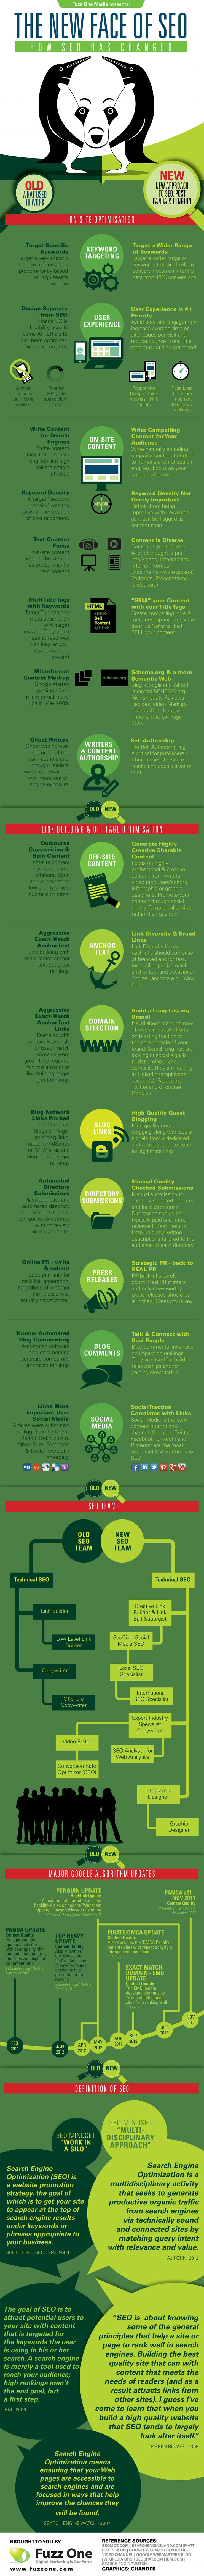 SEO-Tips-for-2014